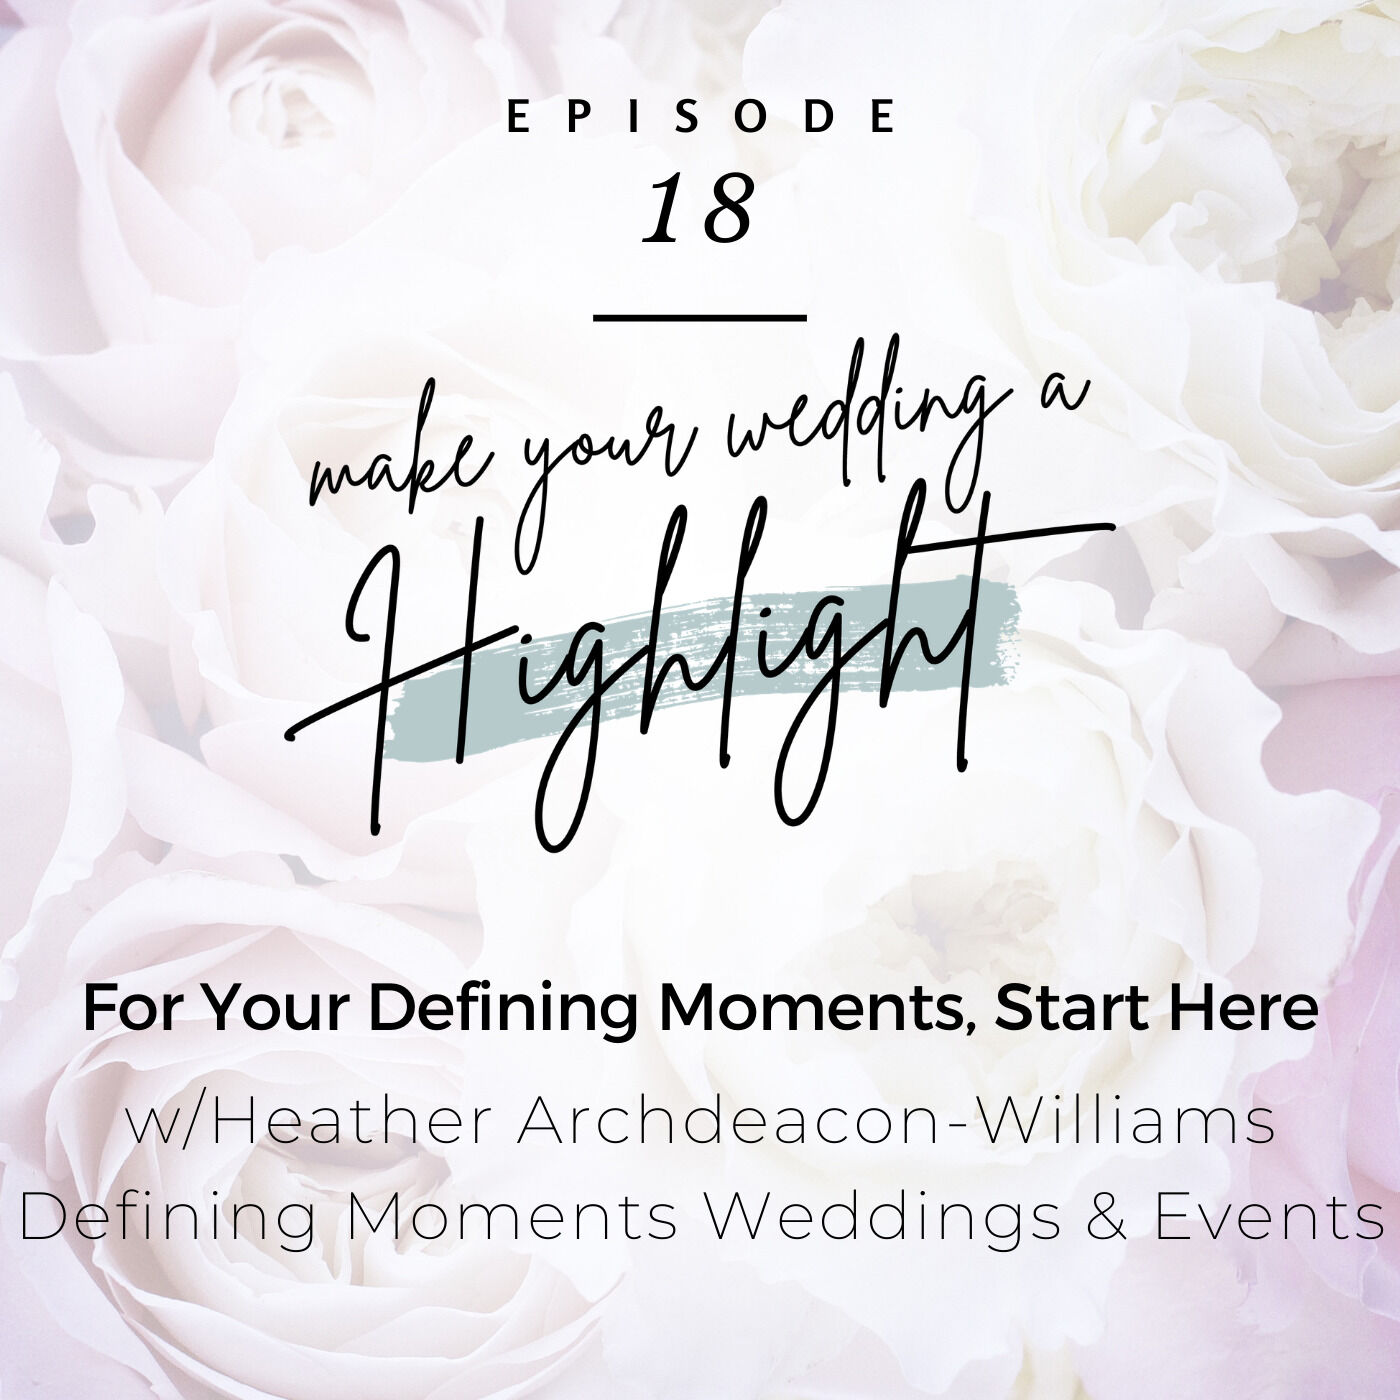 For Your Defining Moments, Start Here